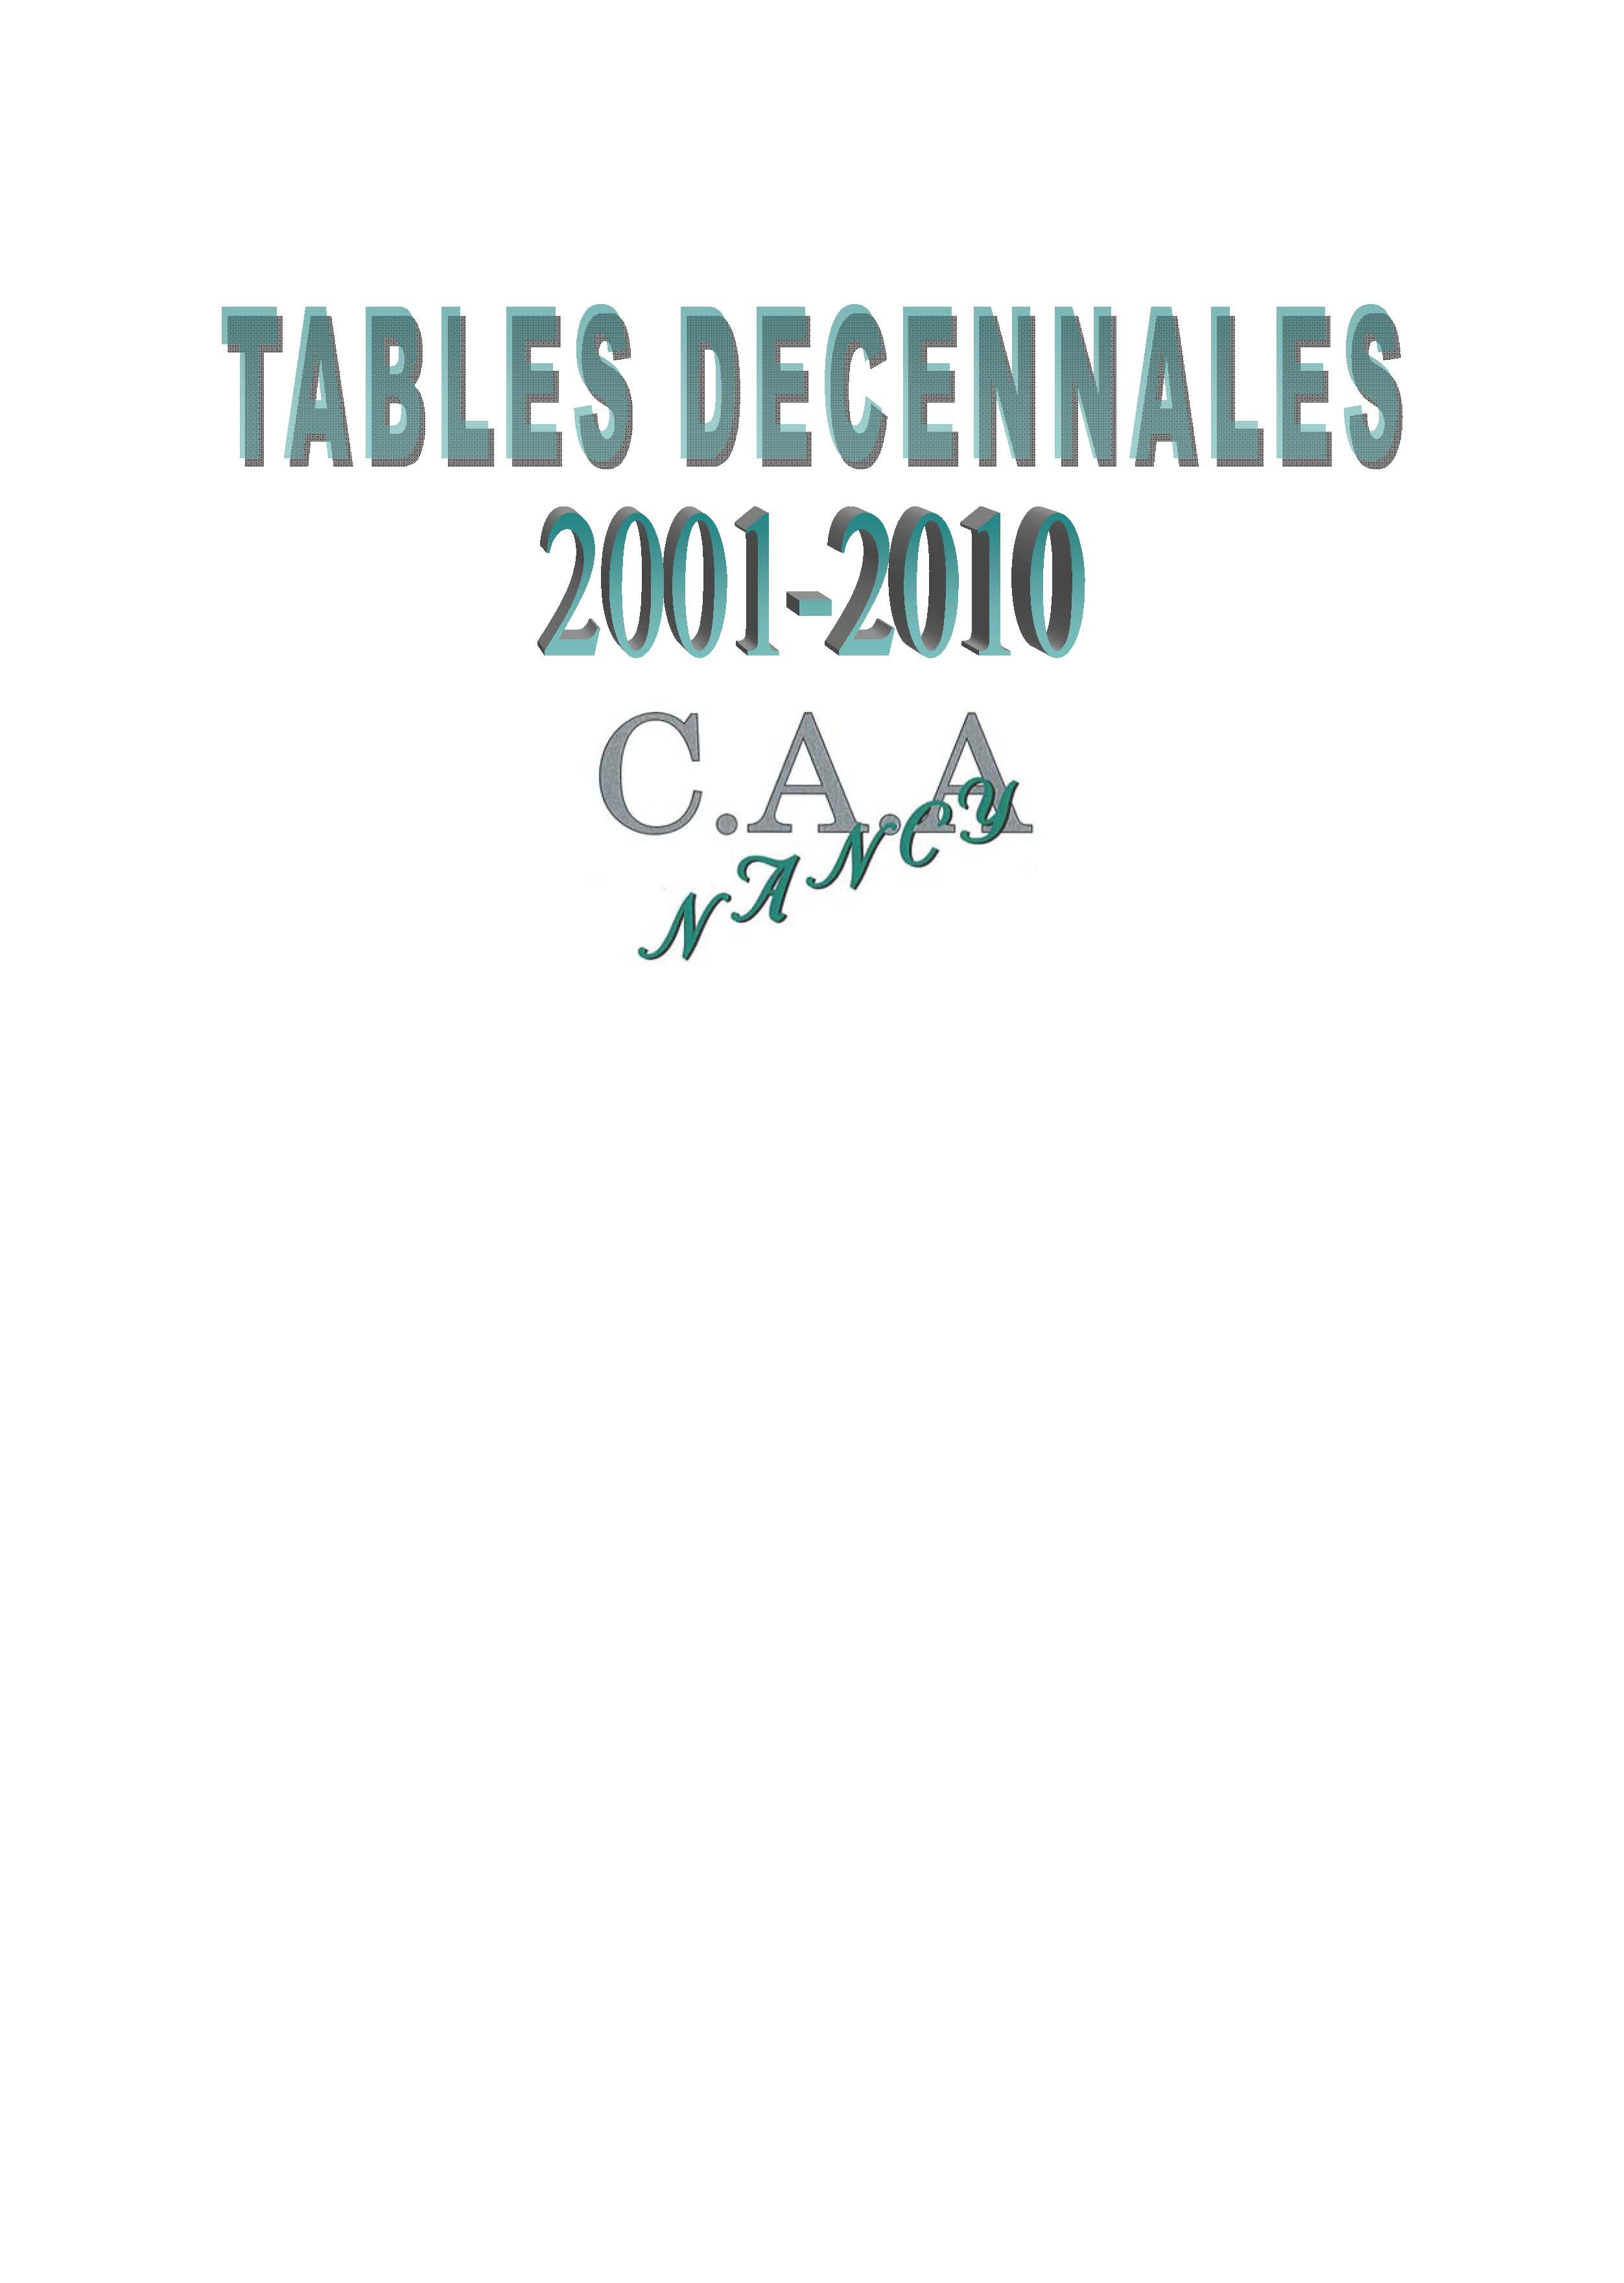 logo-tables-decennales